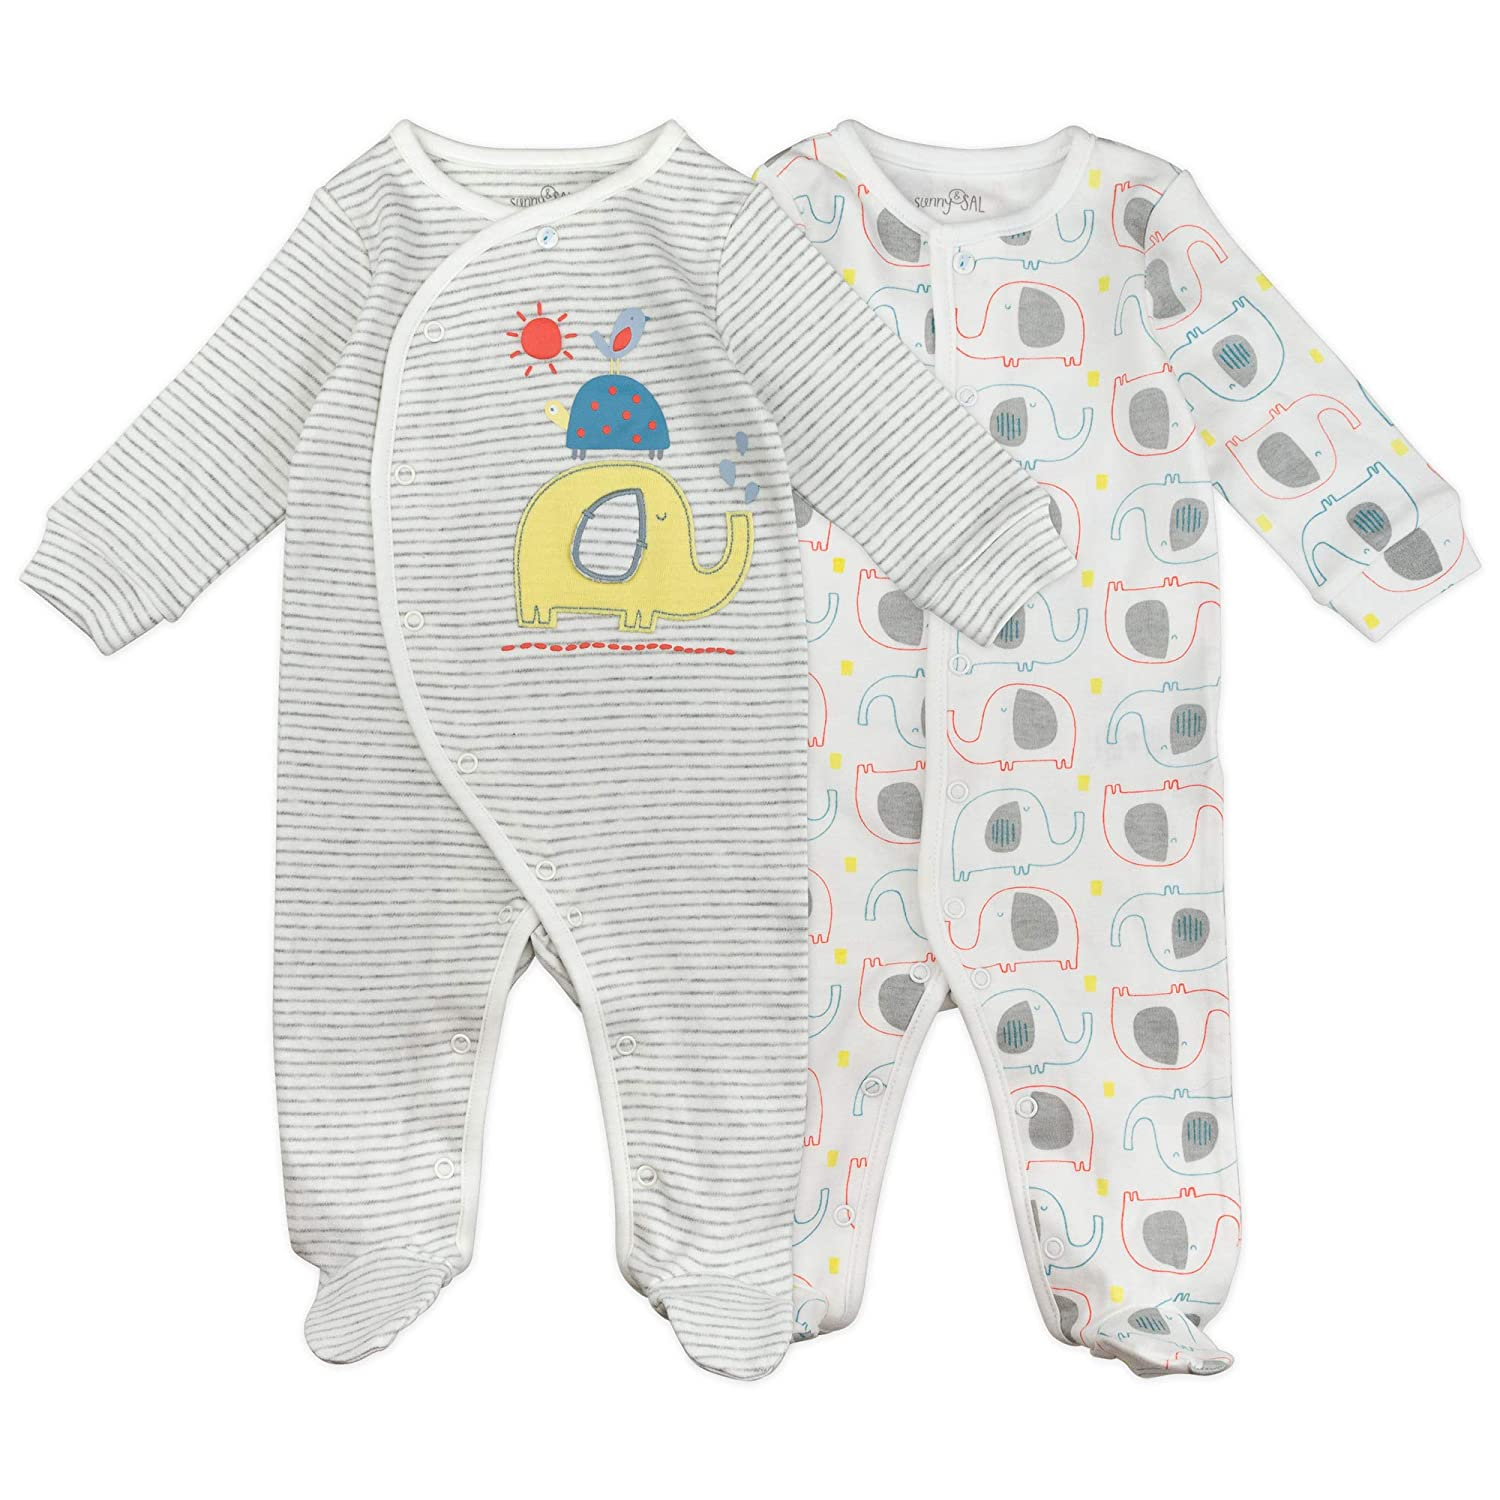 1ec8feba5 Amazon.com: Baby Boy or Baby Girl Sleeper Set, 2-Pack Footed Sleep and Play  Pajamas: Clothing